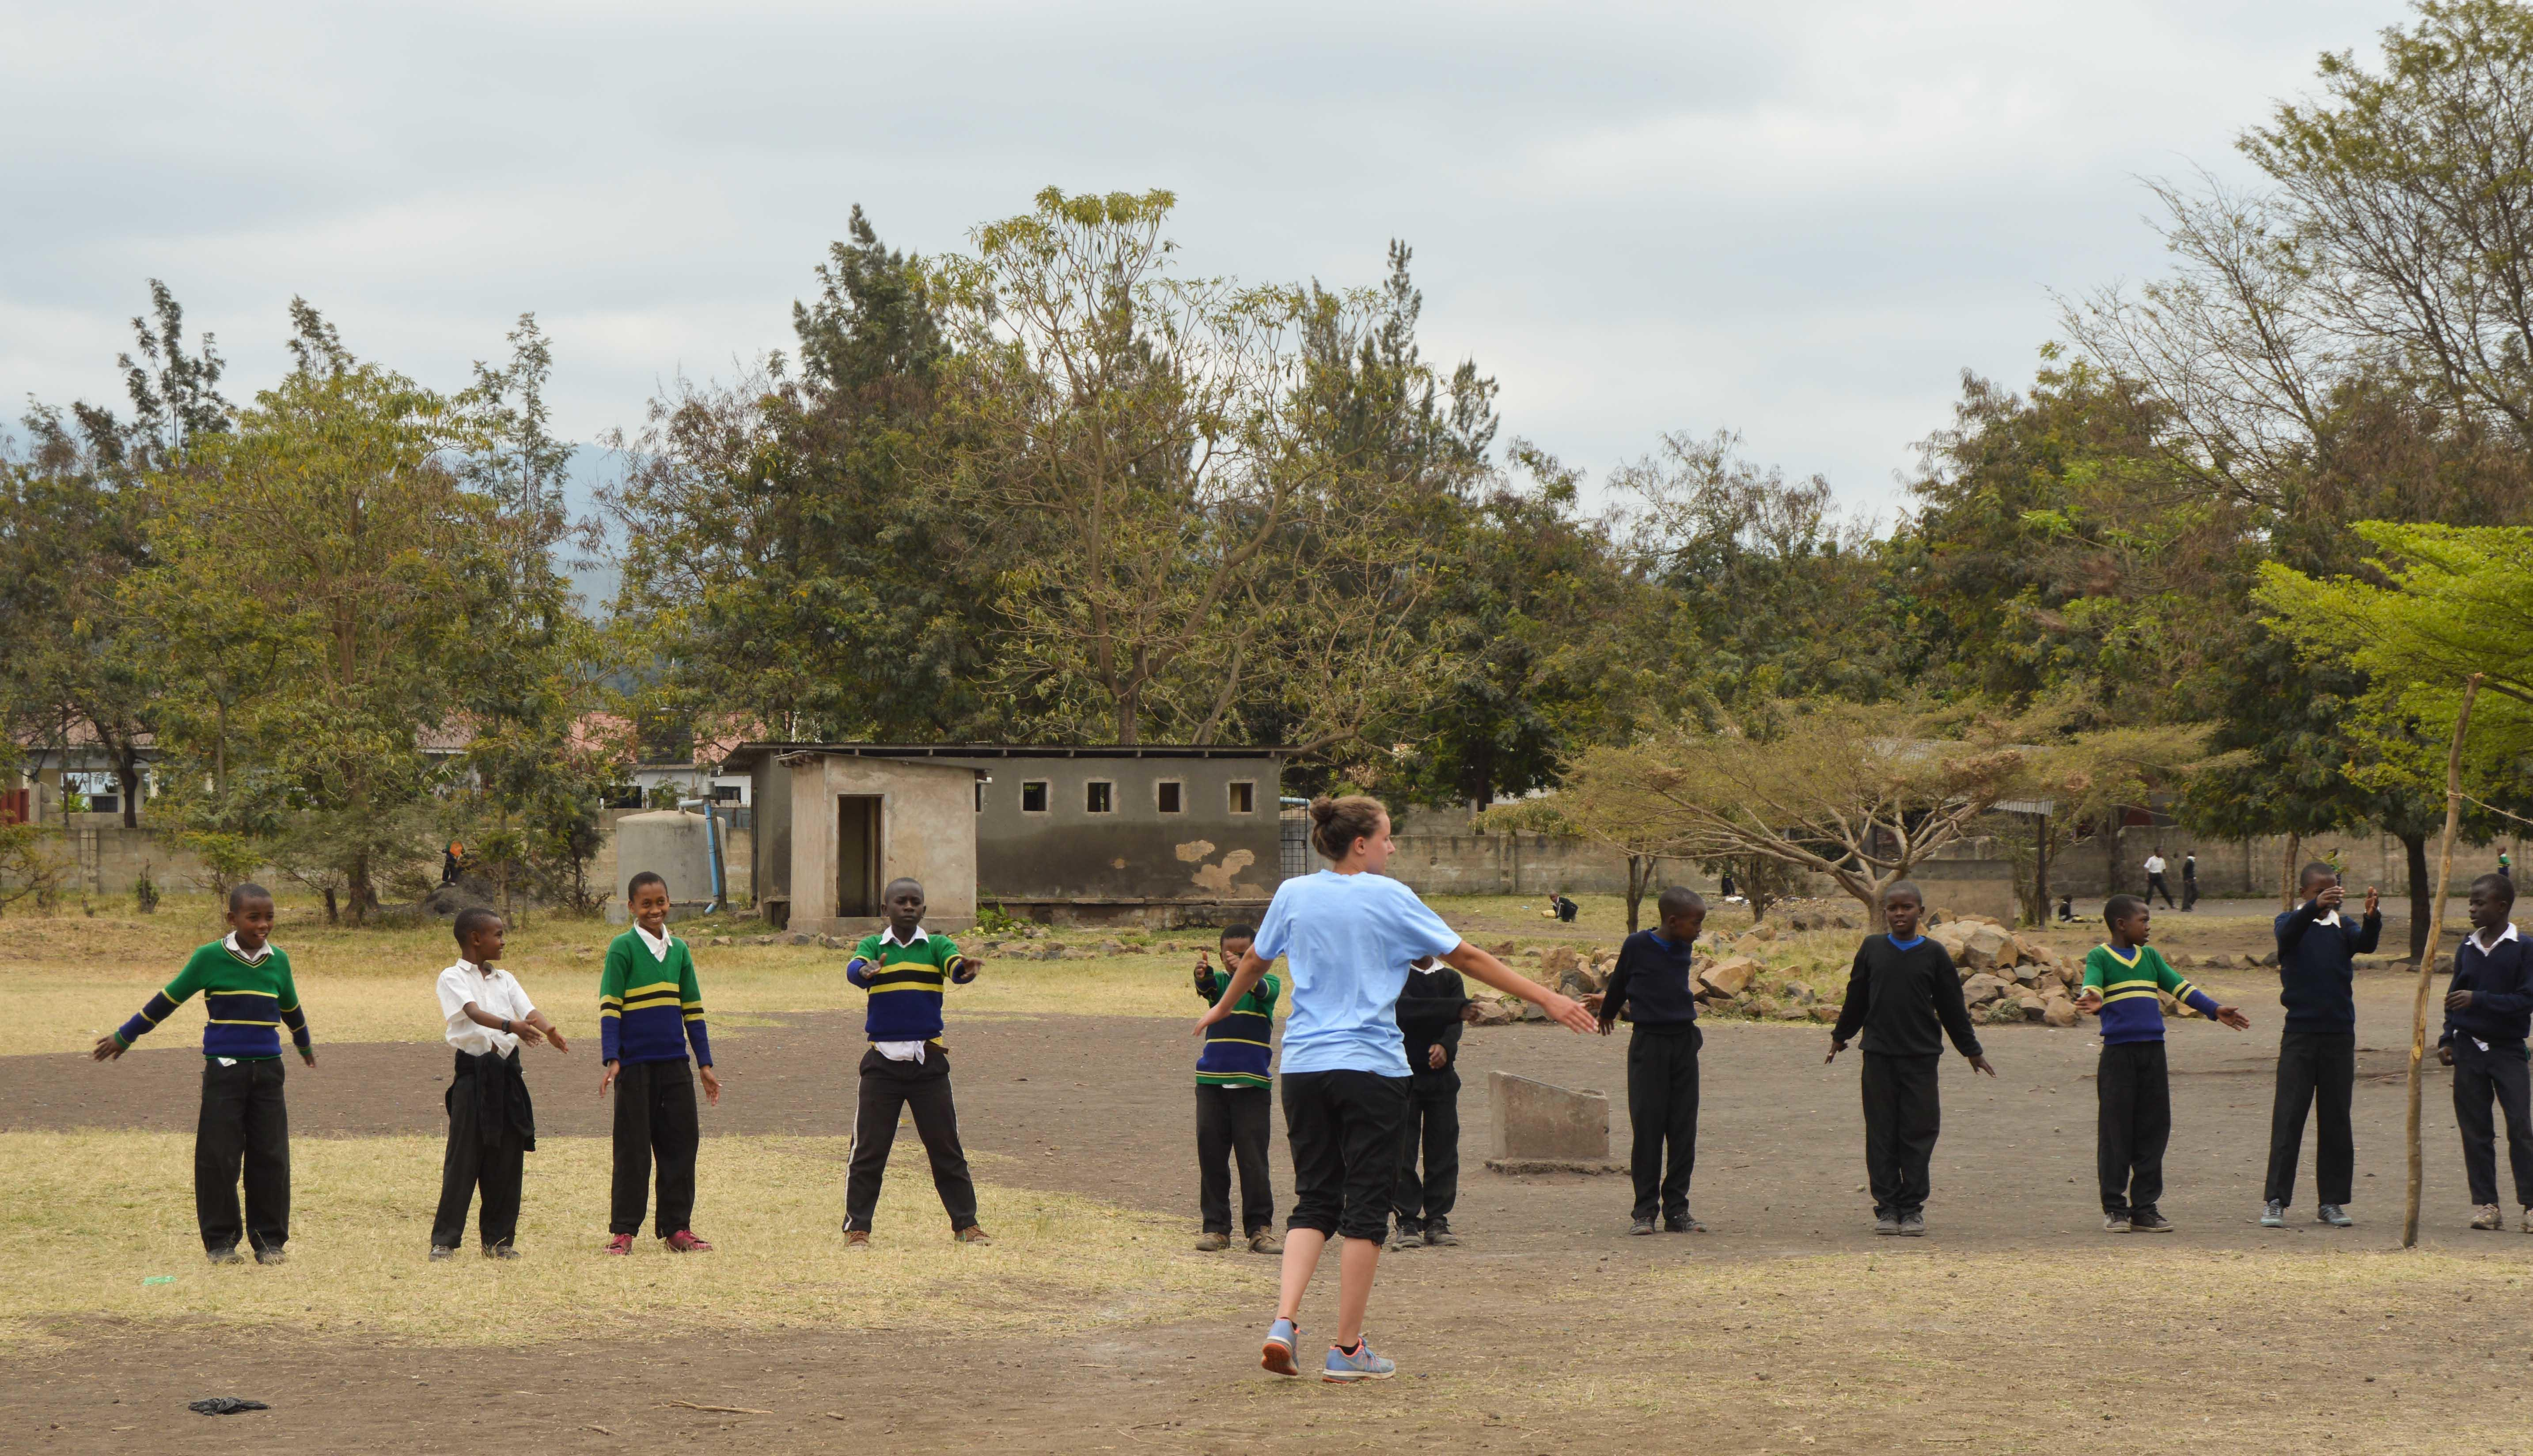 A sports instructor does a quick warm up with students during her volunteer sports coaching in schools in Tanzania